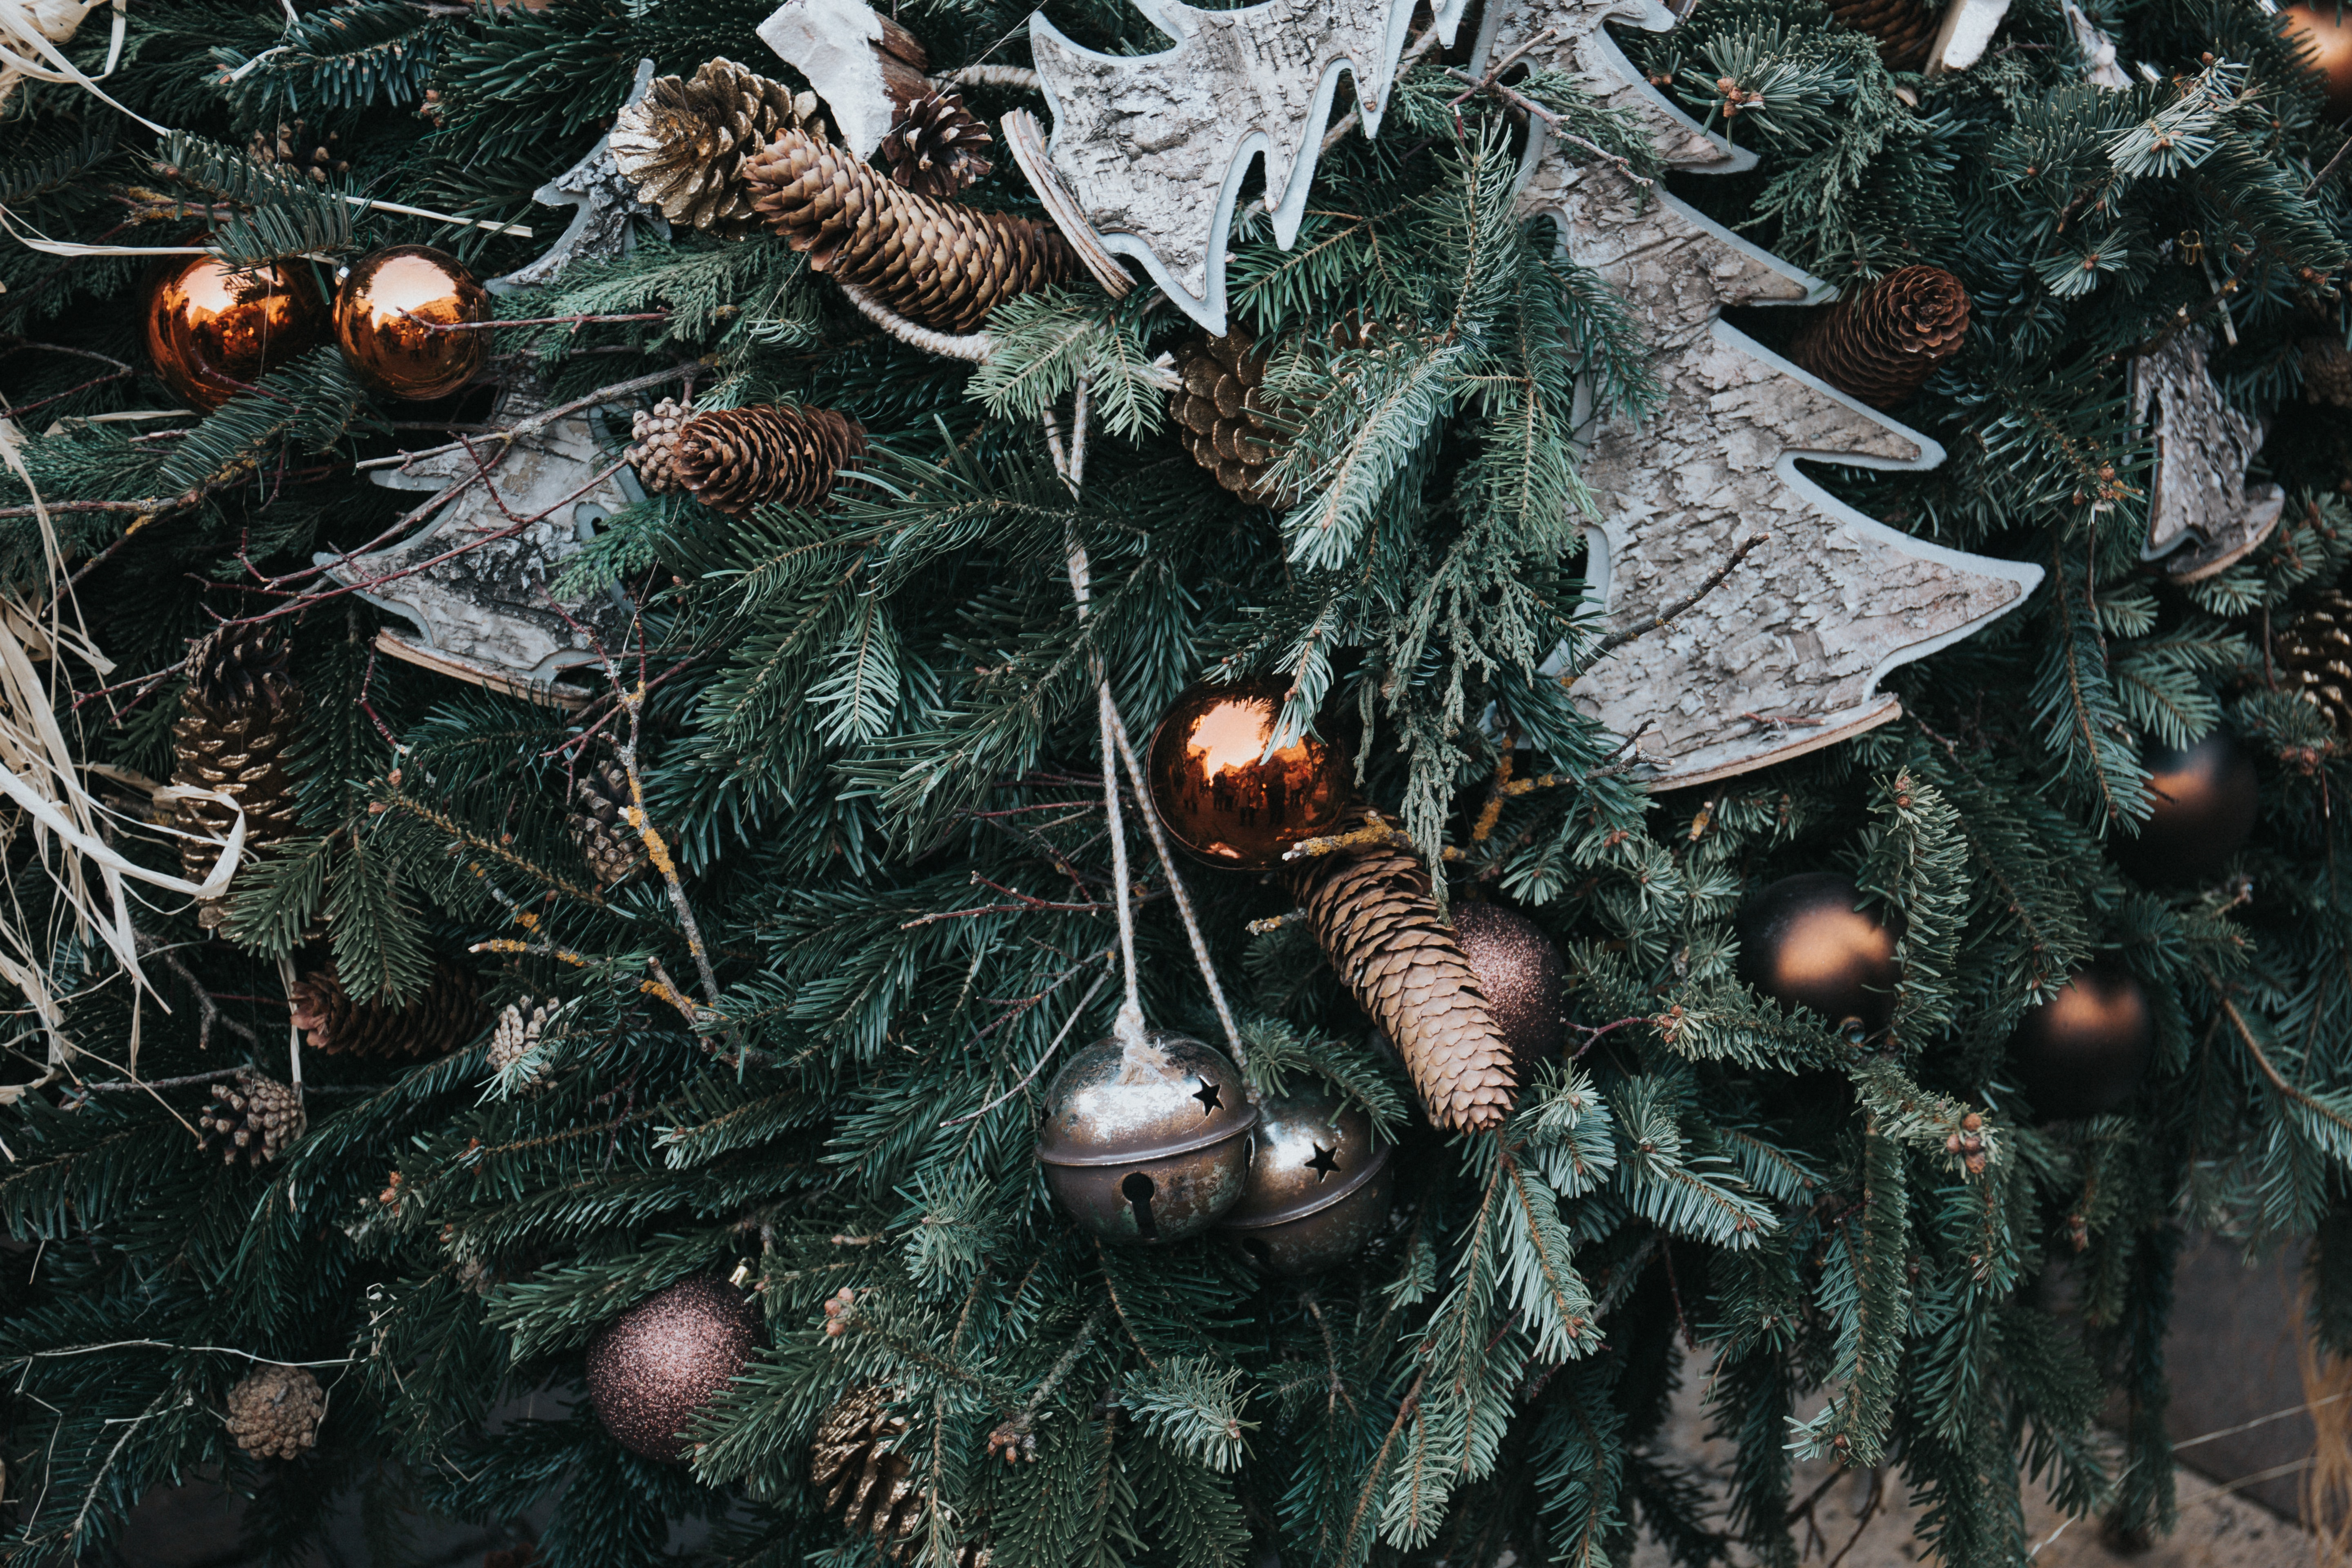 Gold, silver, and white ornaments hung on an evergreen tree